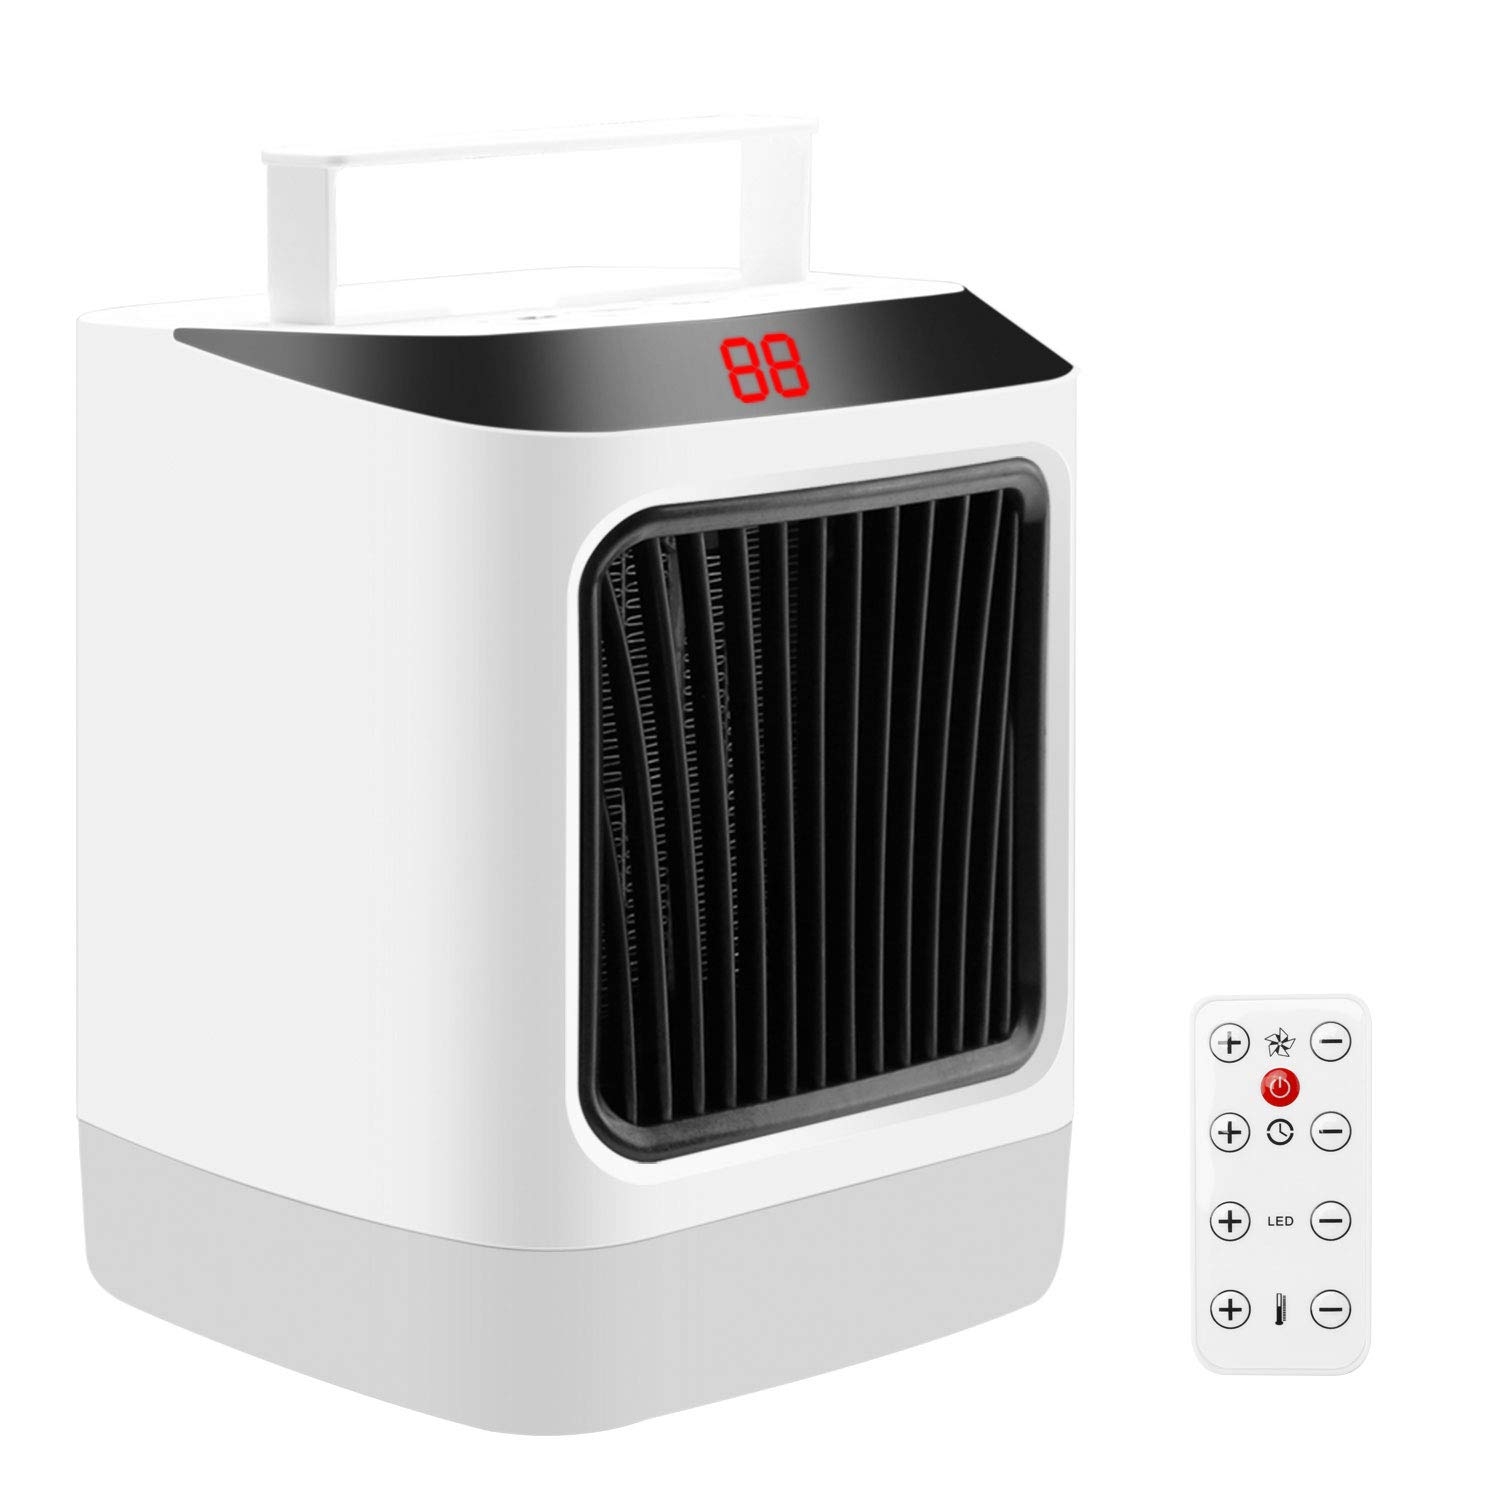 Innens Electric Space Heater, Portable Indoor 800W Desk Small Fast Heating Fan with 7 Color LED Light, Adjustable Thermostat, Timing Setting, Overheat Protection, Remote Control White